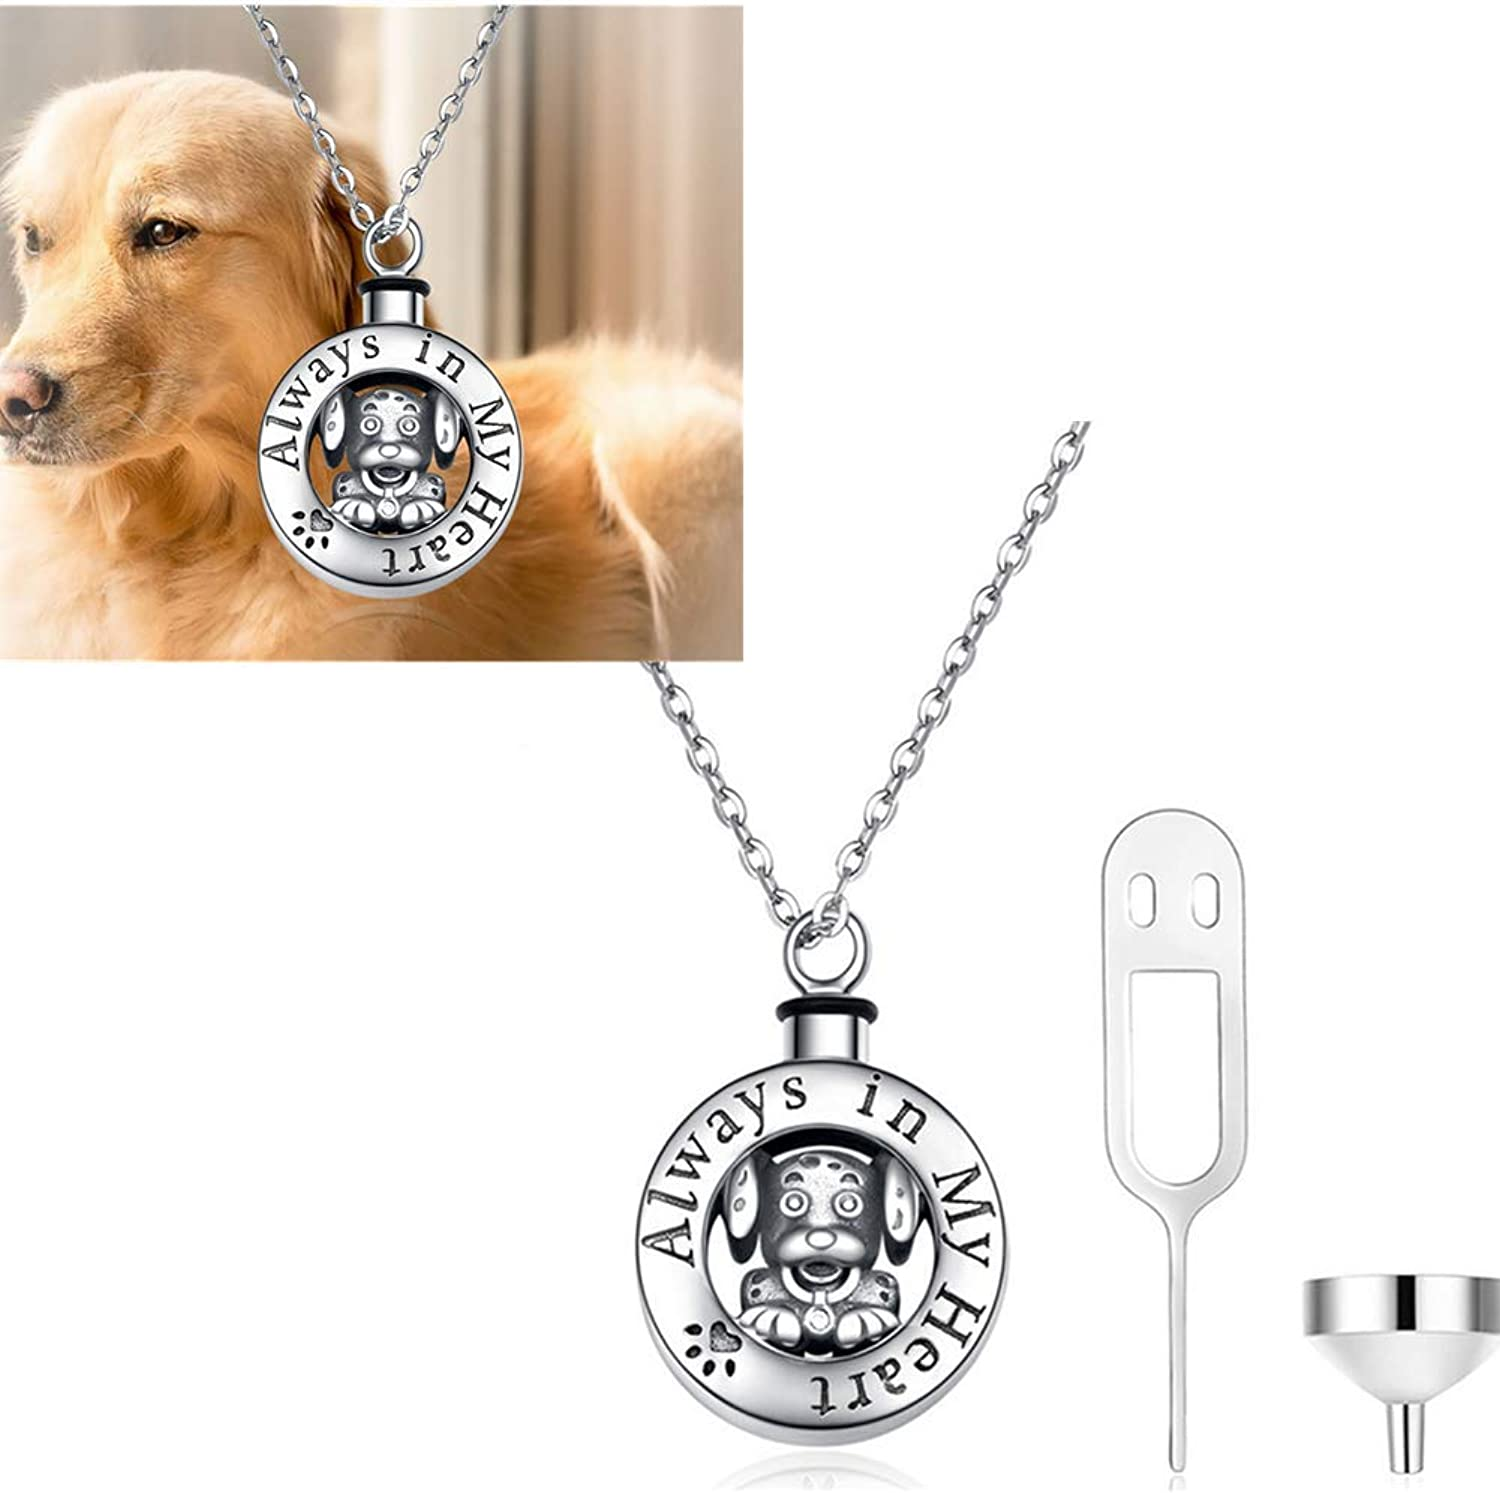 925 silver European and American creative jewelry commemorative pet urn box necklace can be opened